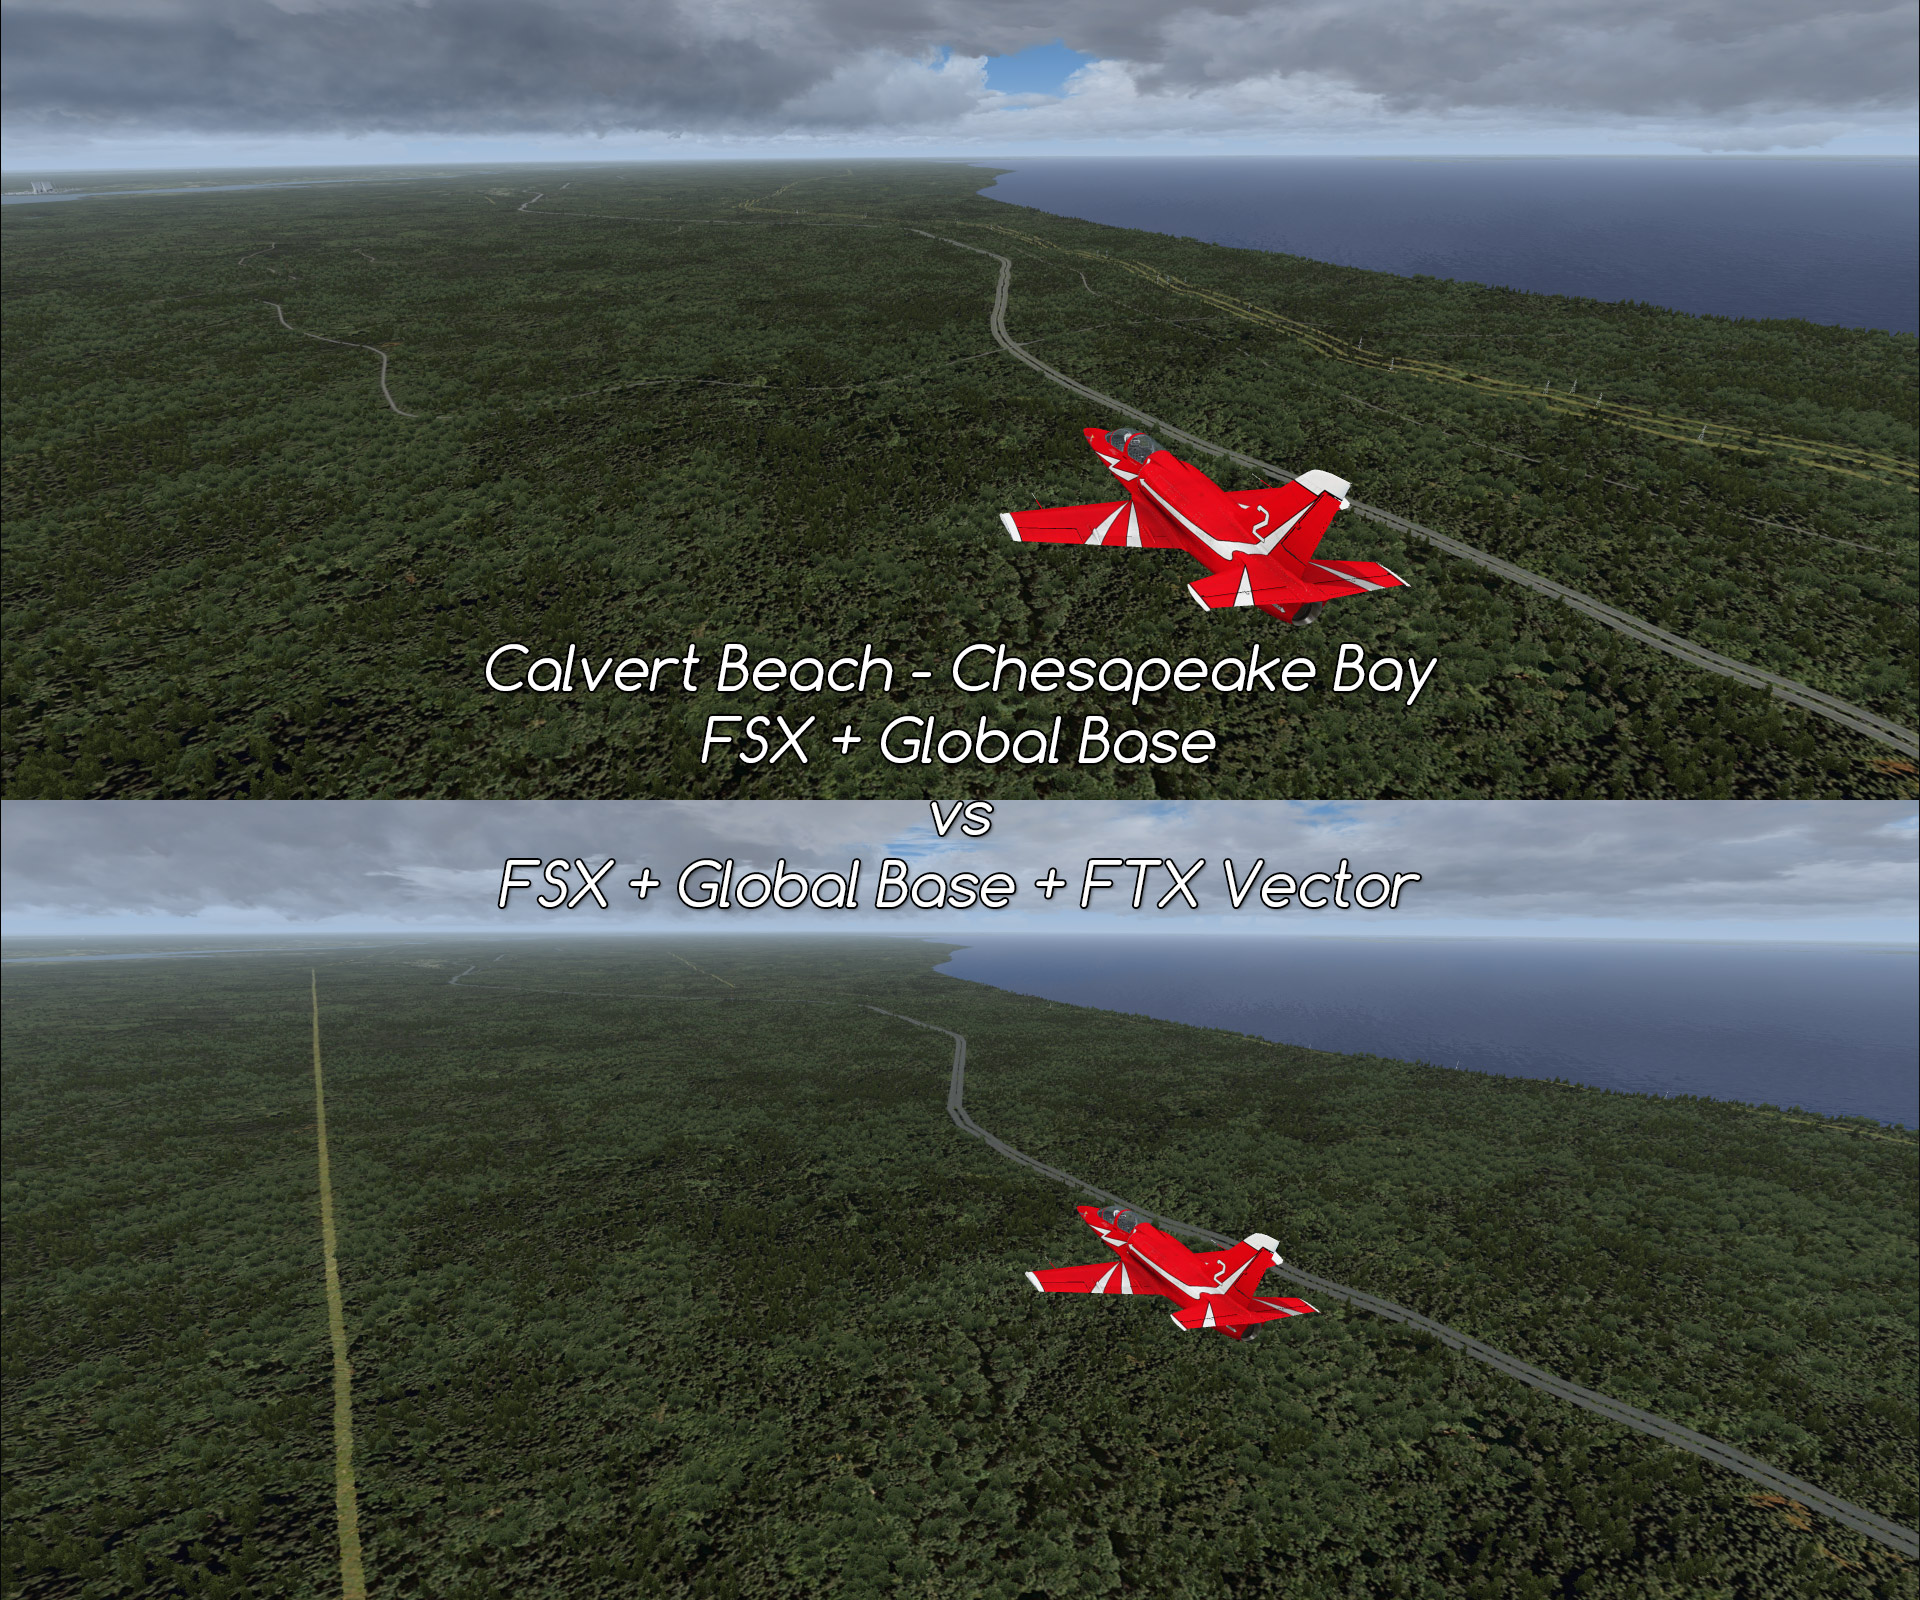 FTX Global Vector - ORBX - recenzja (5*)